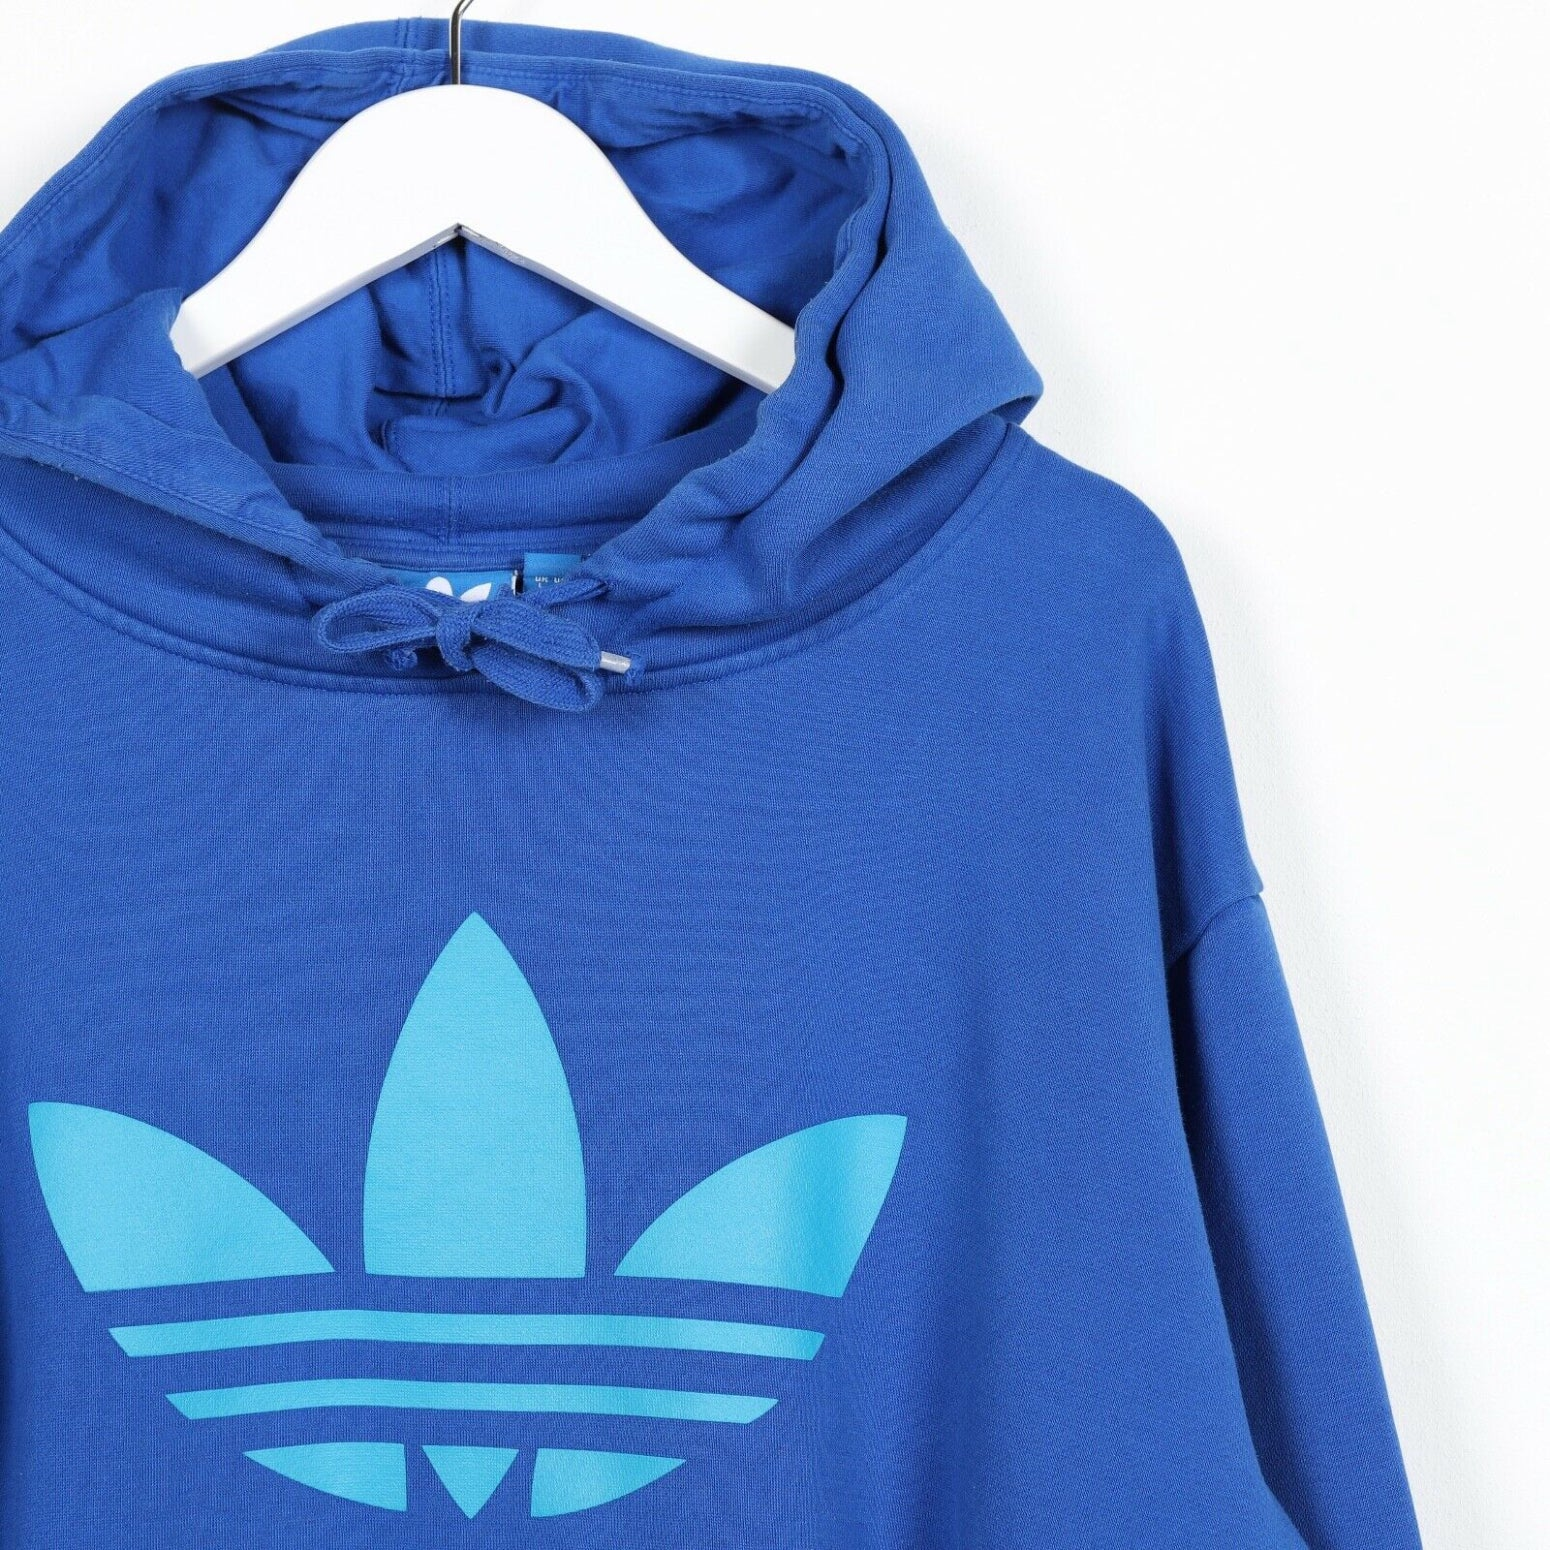 Vintage ADIDAS ORIGINALS Big Trefoil Logo Hoodie Sweatshirt Blue Large L